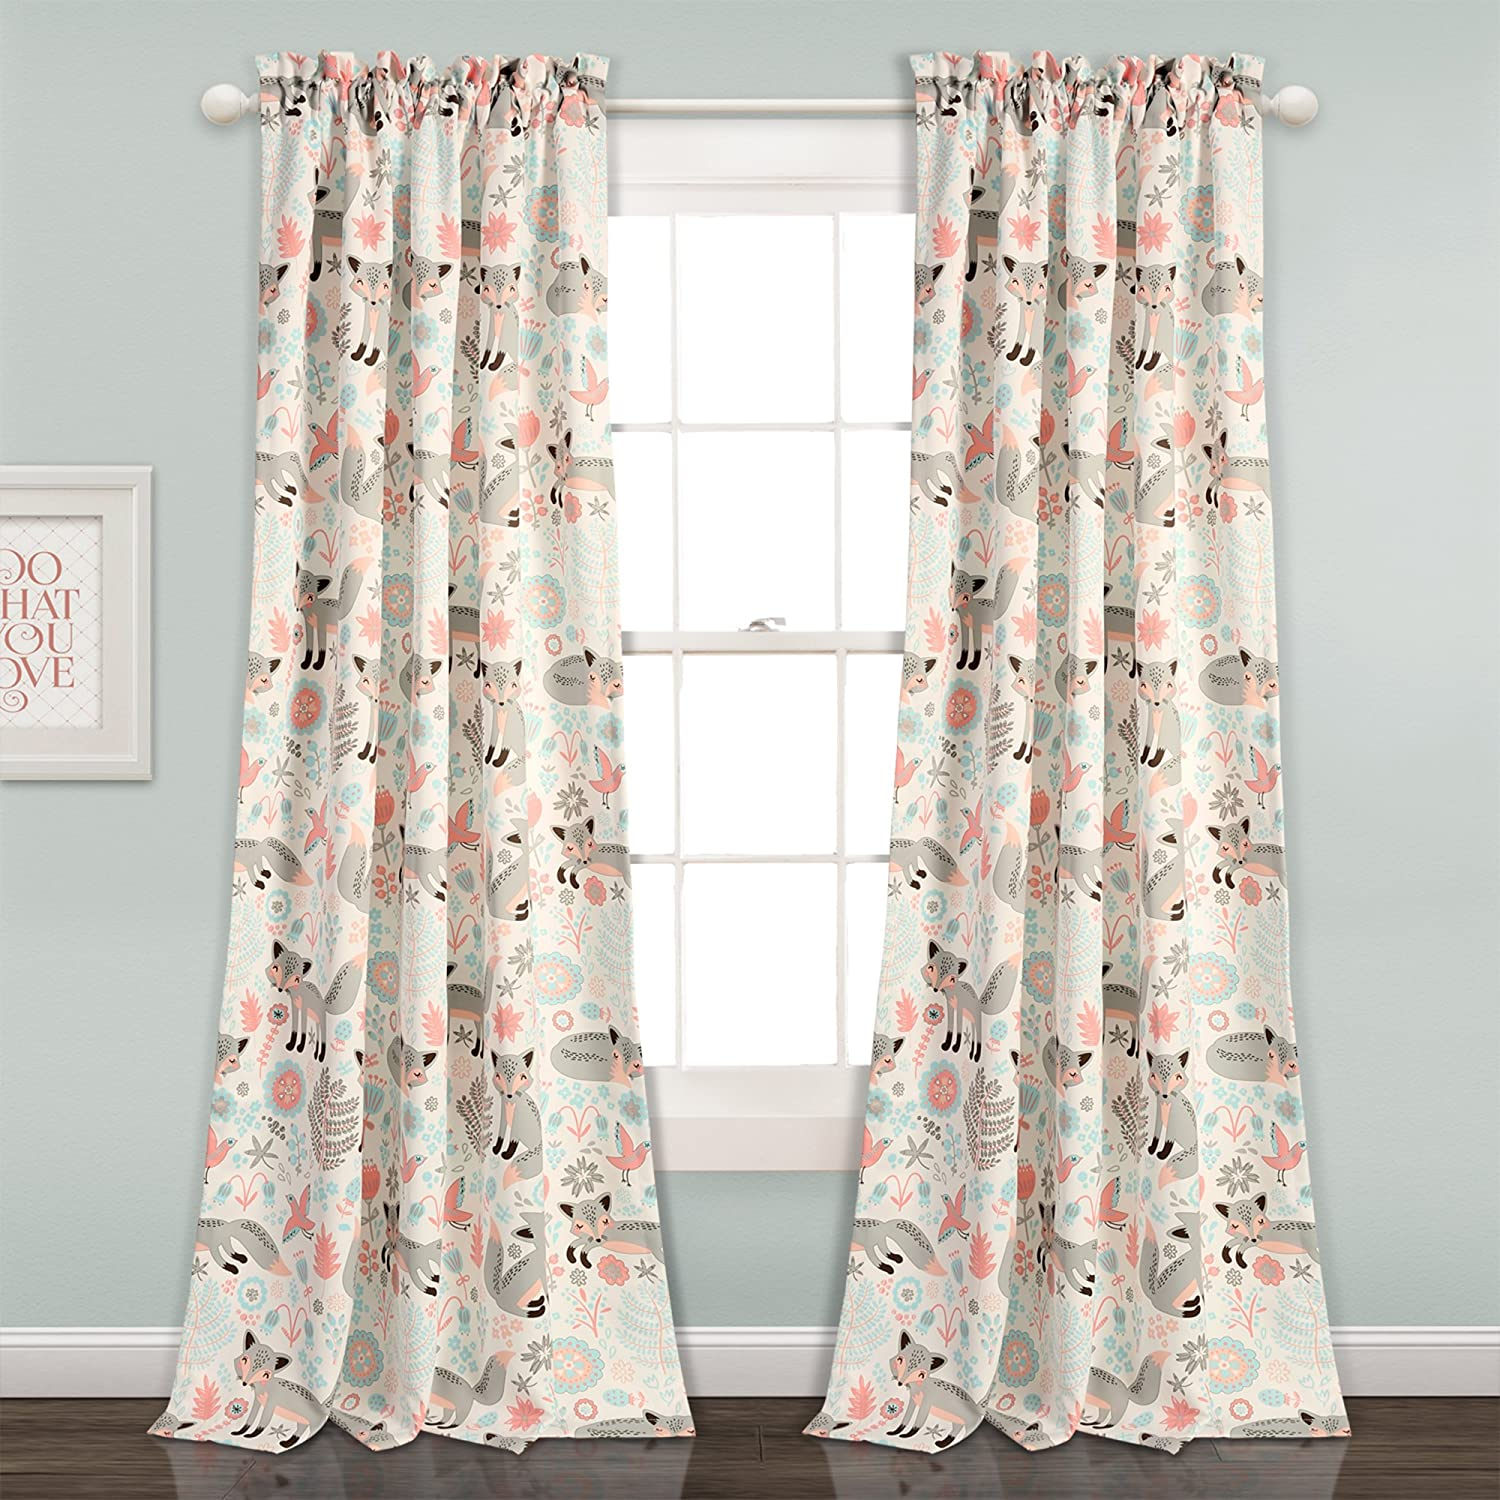 "Lush Decor 16T001678 Pixie Fox Room Darkening Window Curtain Panel Pair, 84"" x 52"", Gray & Pink"